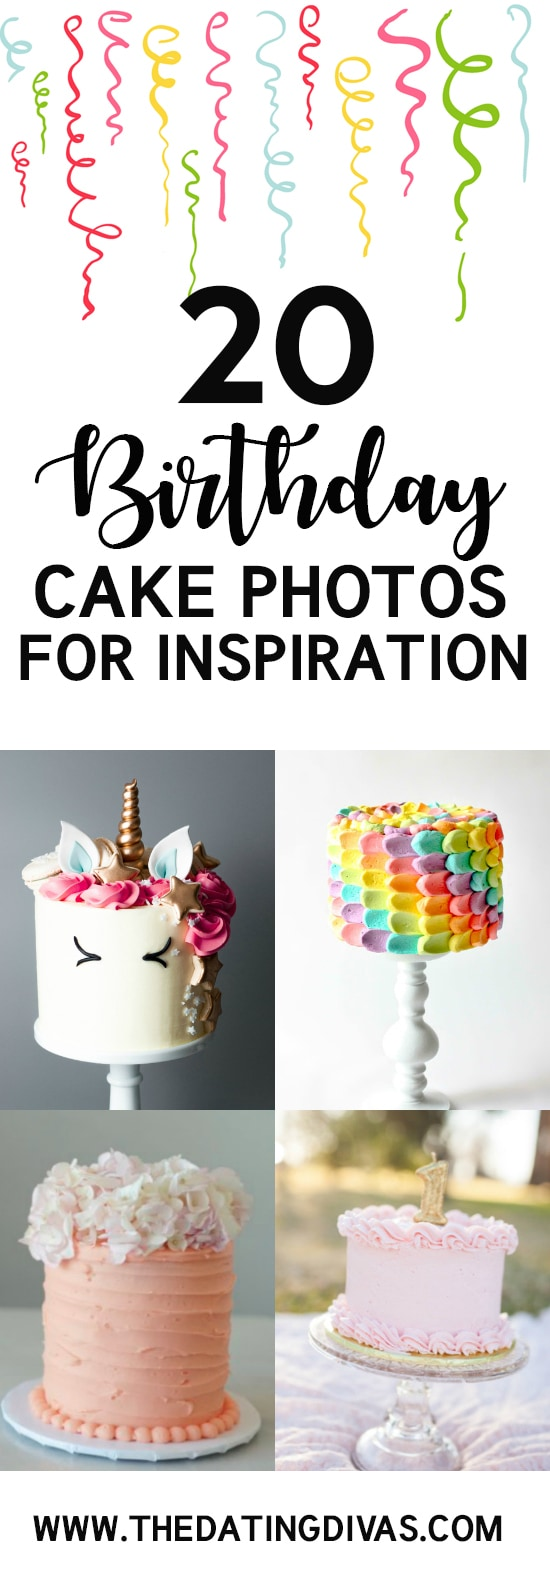 Birthday Cake Photos to Inspire